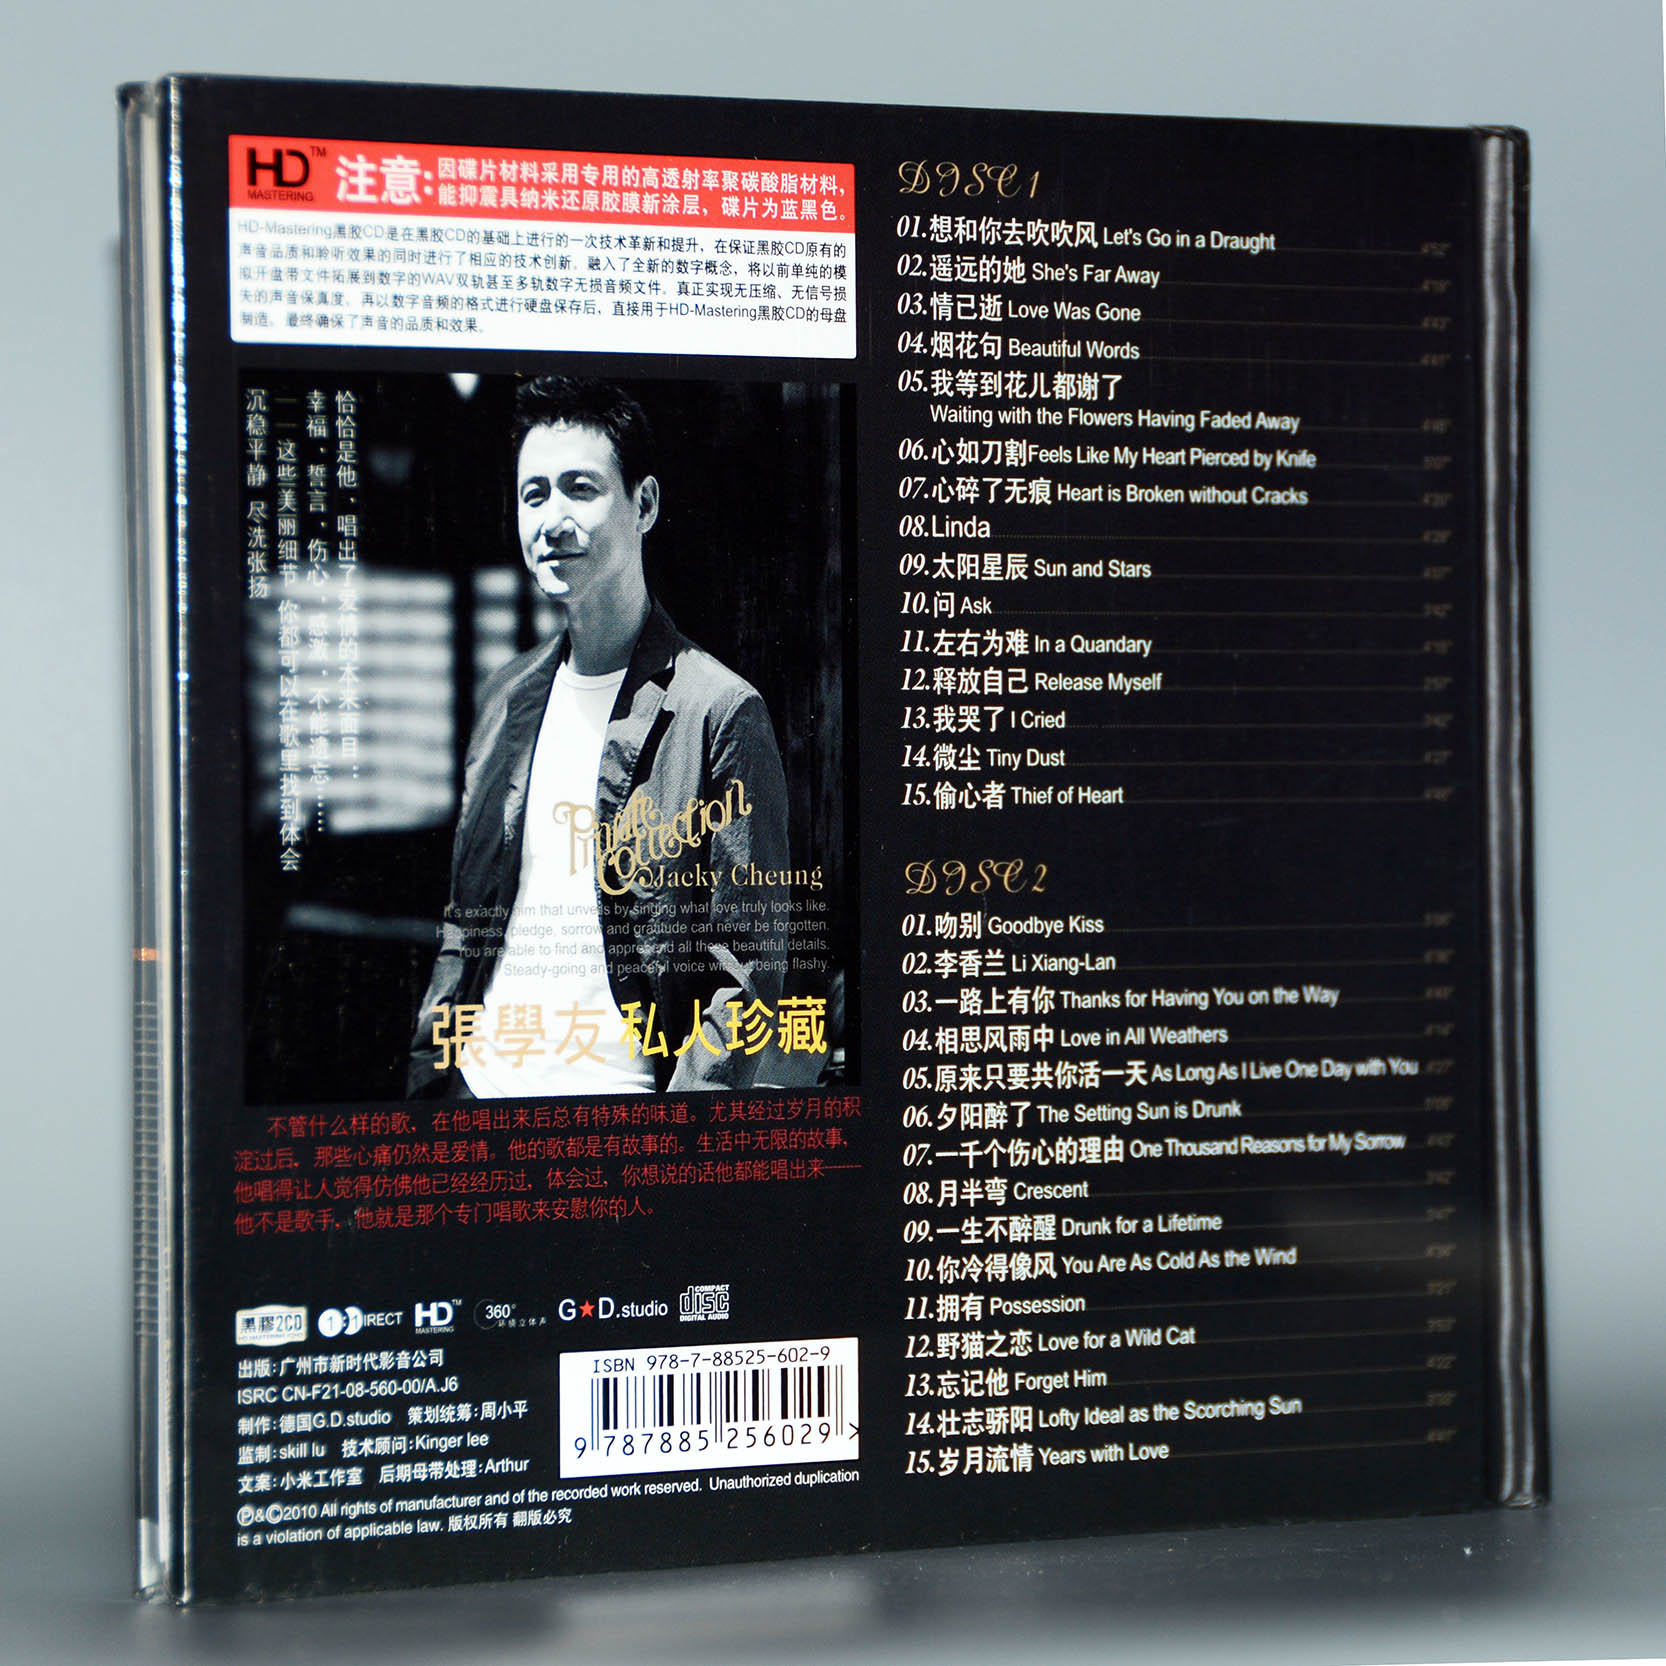 Genuine Jacky Cheung Private Collection Vinyl CD Classic Old Songs